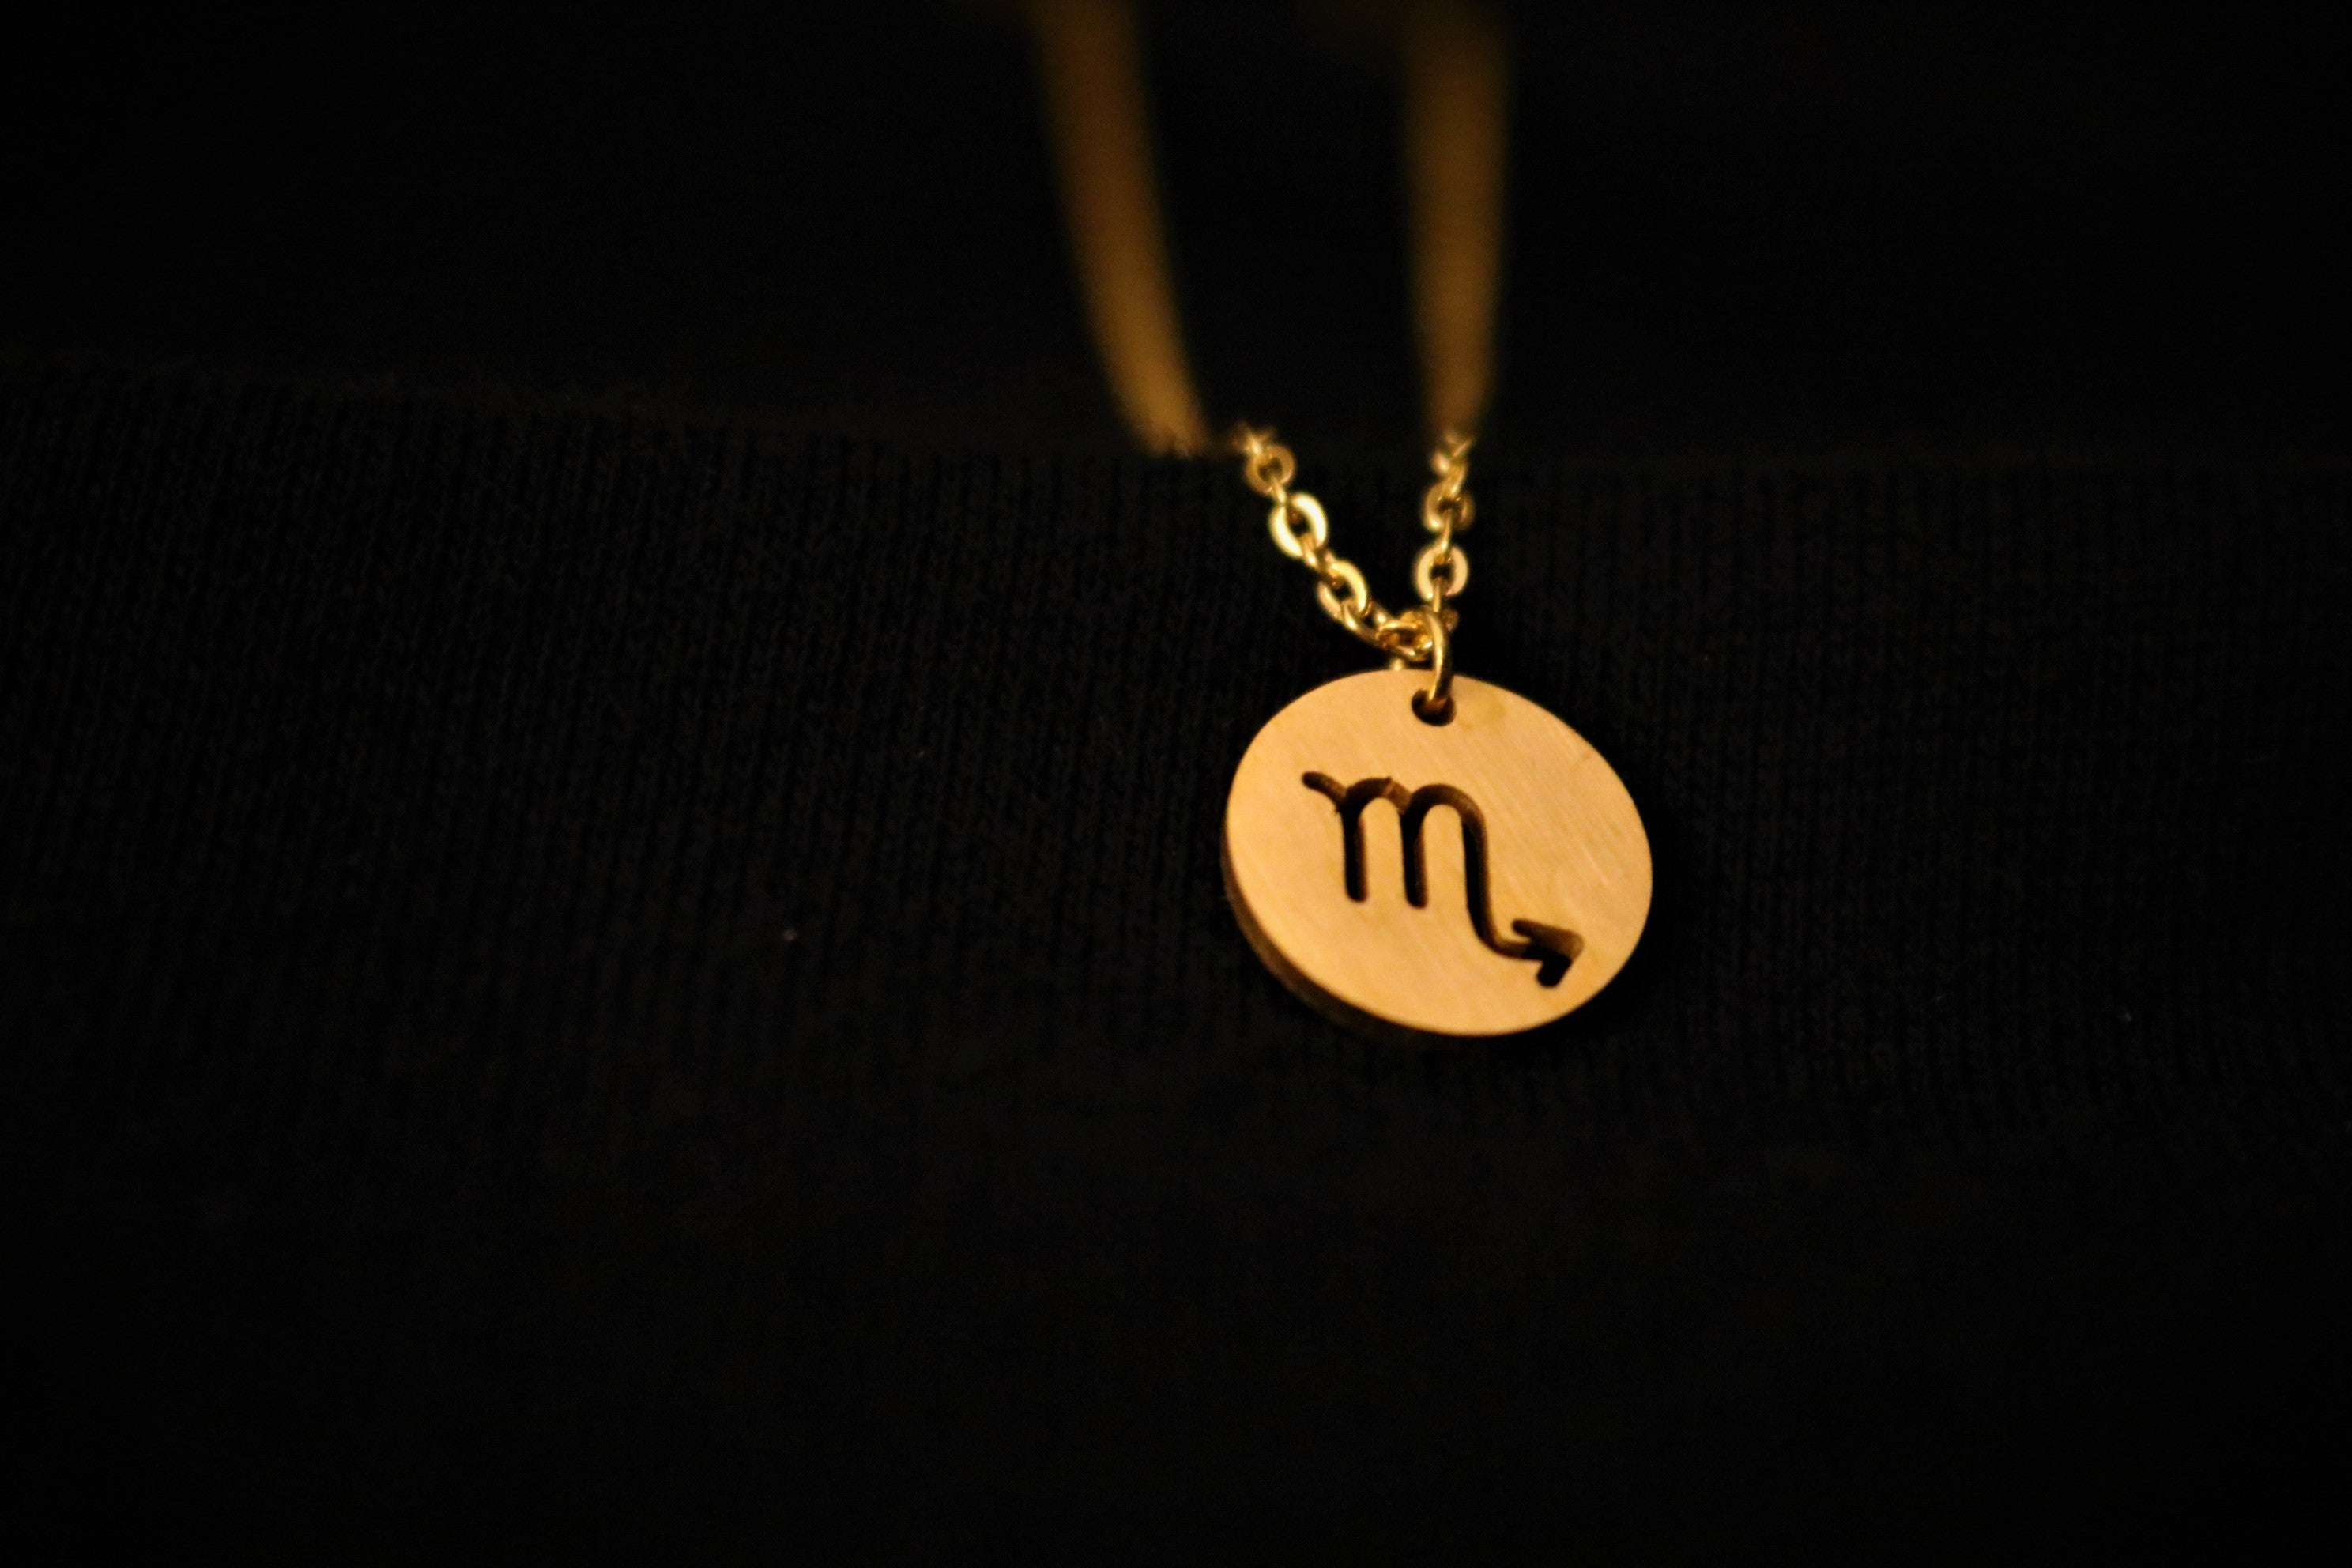 Gold Scorpio Zodiac Horoscope Necklace